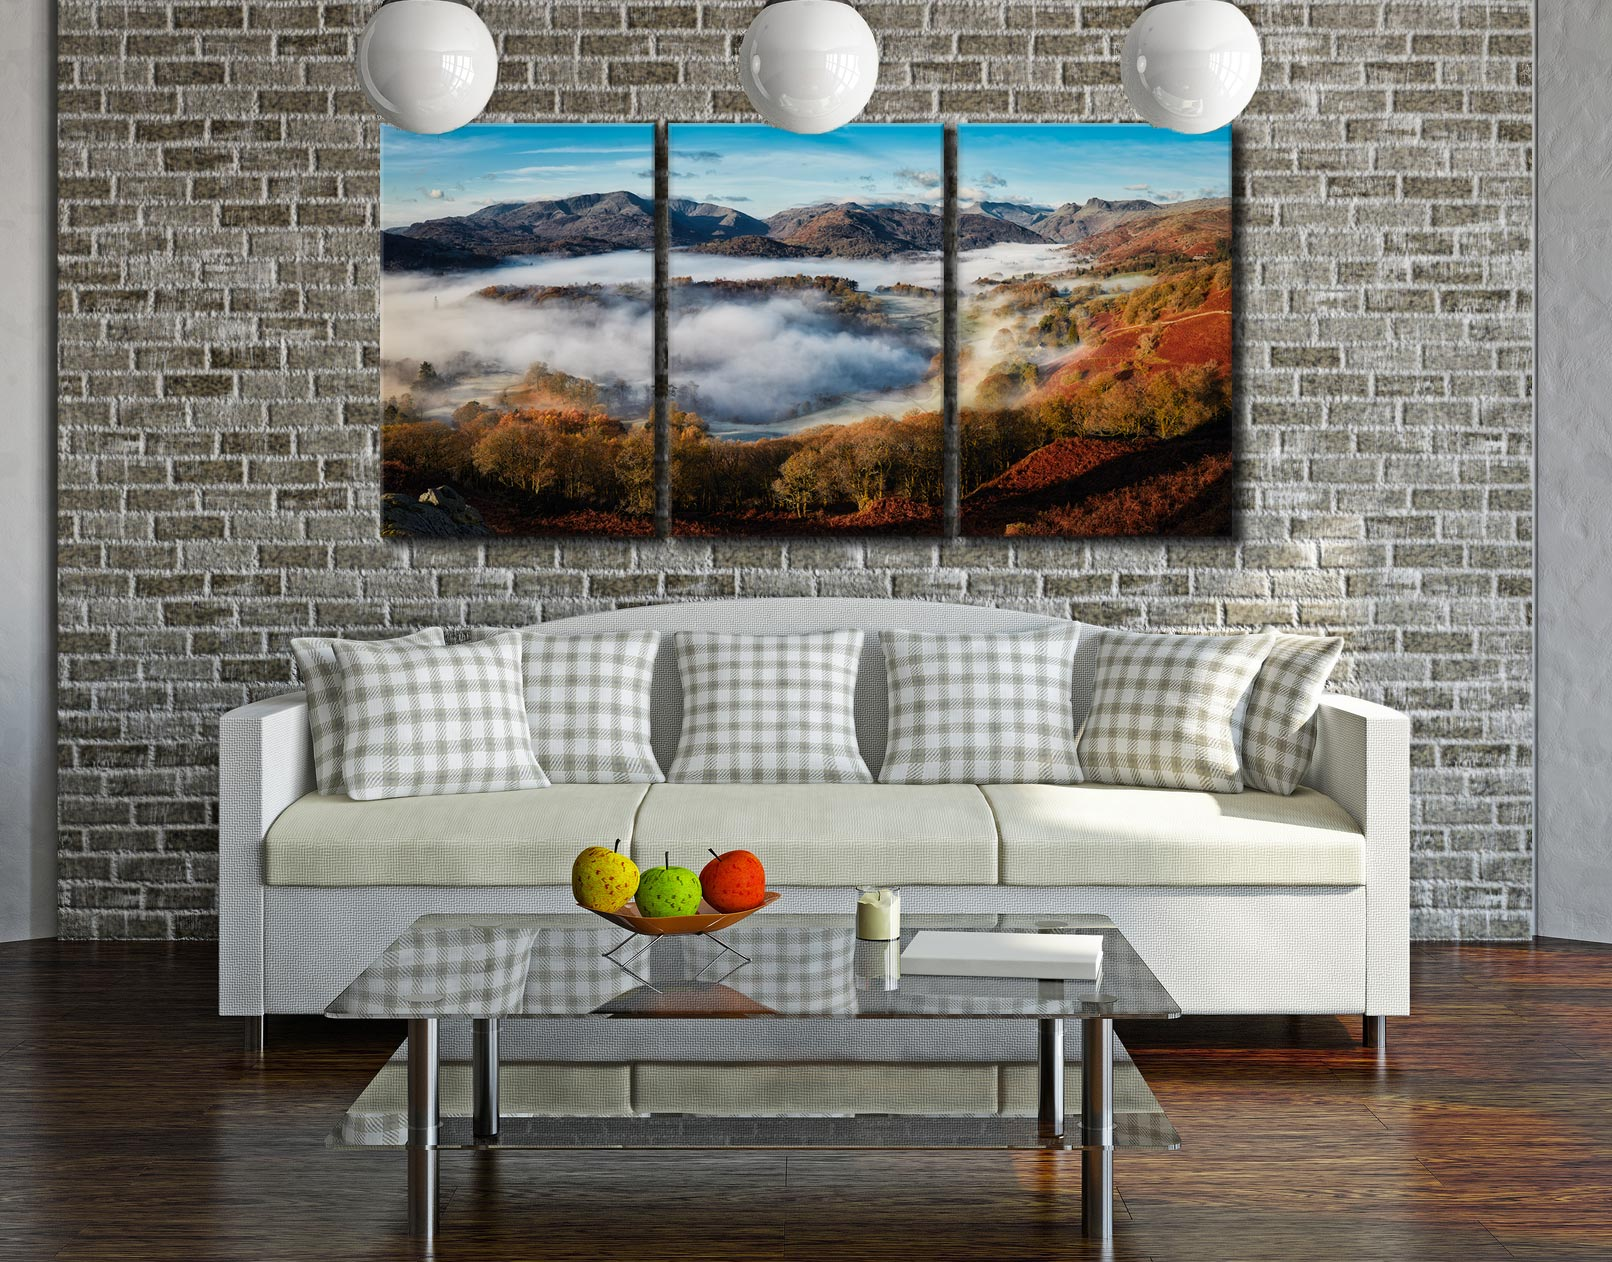 Great Langdale Misty Morning - 3 Panel Canvas on Wall